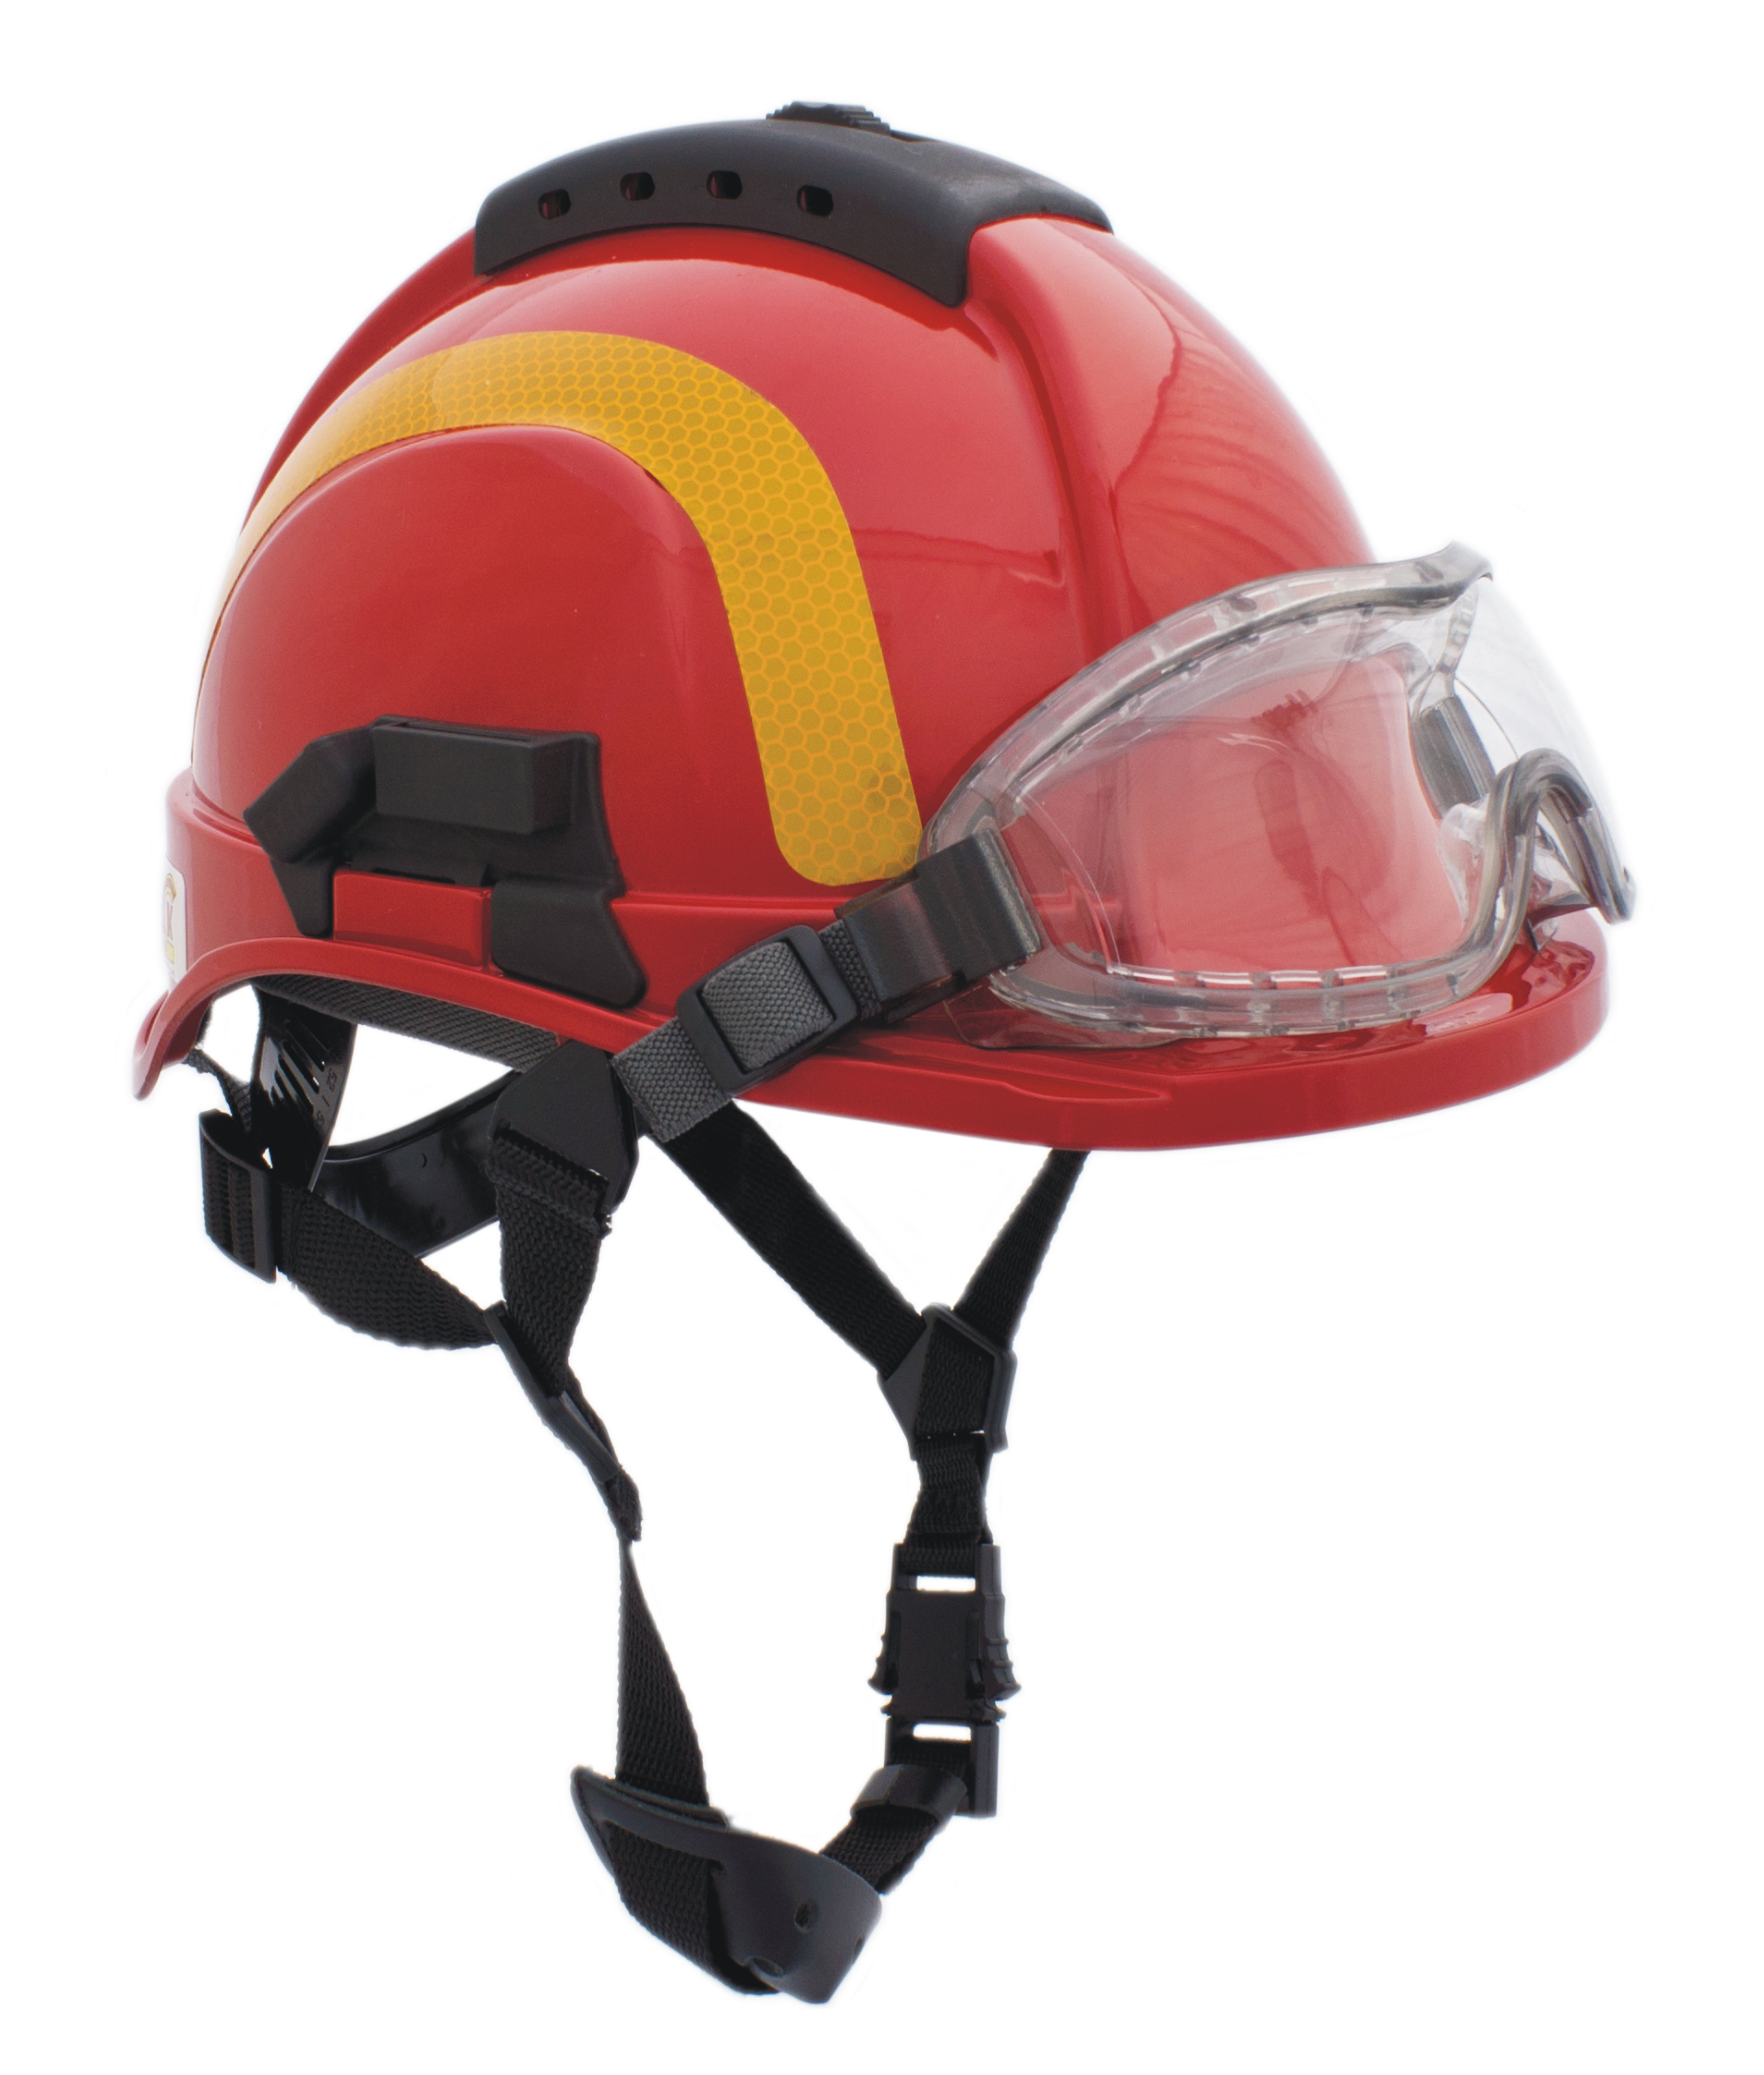 th-101-04-red-goggles